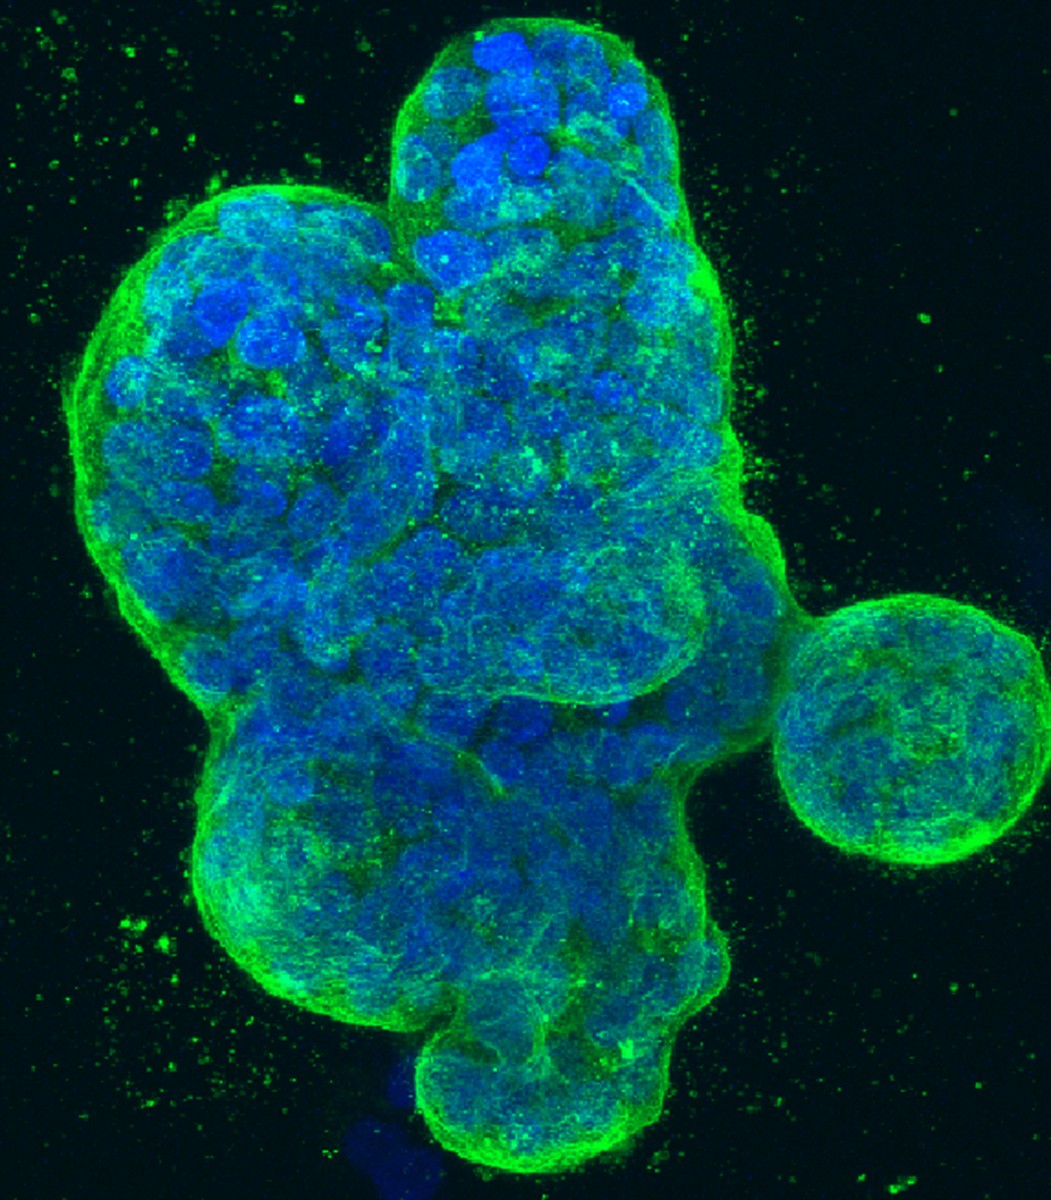 Three-dimensional culture of human breast cancer cells, with DNA stained blue and a protein in the cell surface membrane stained green.